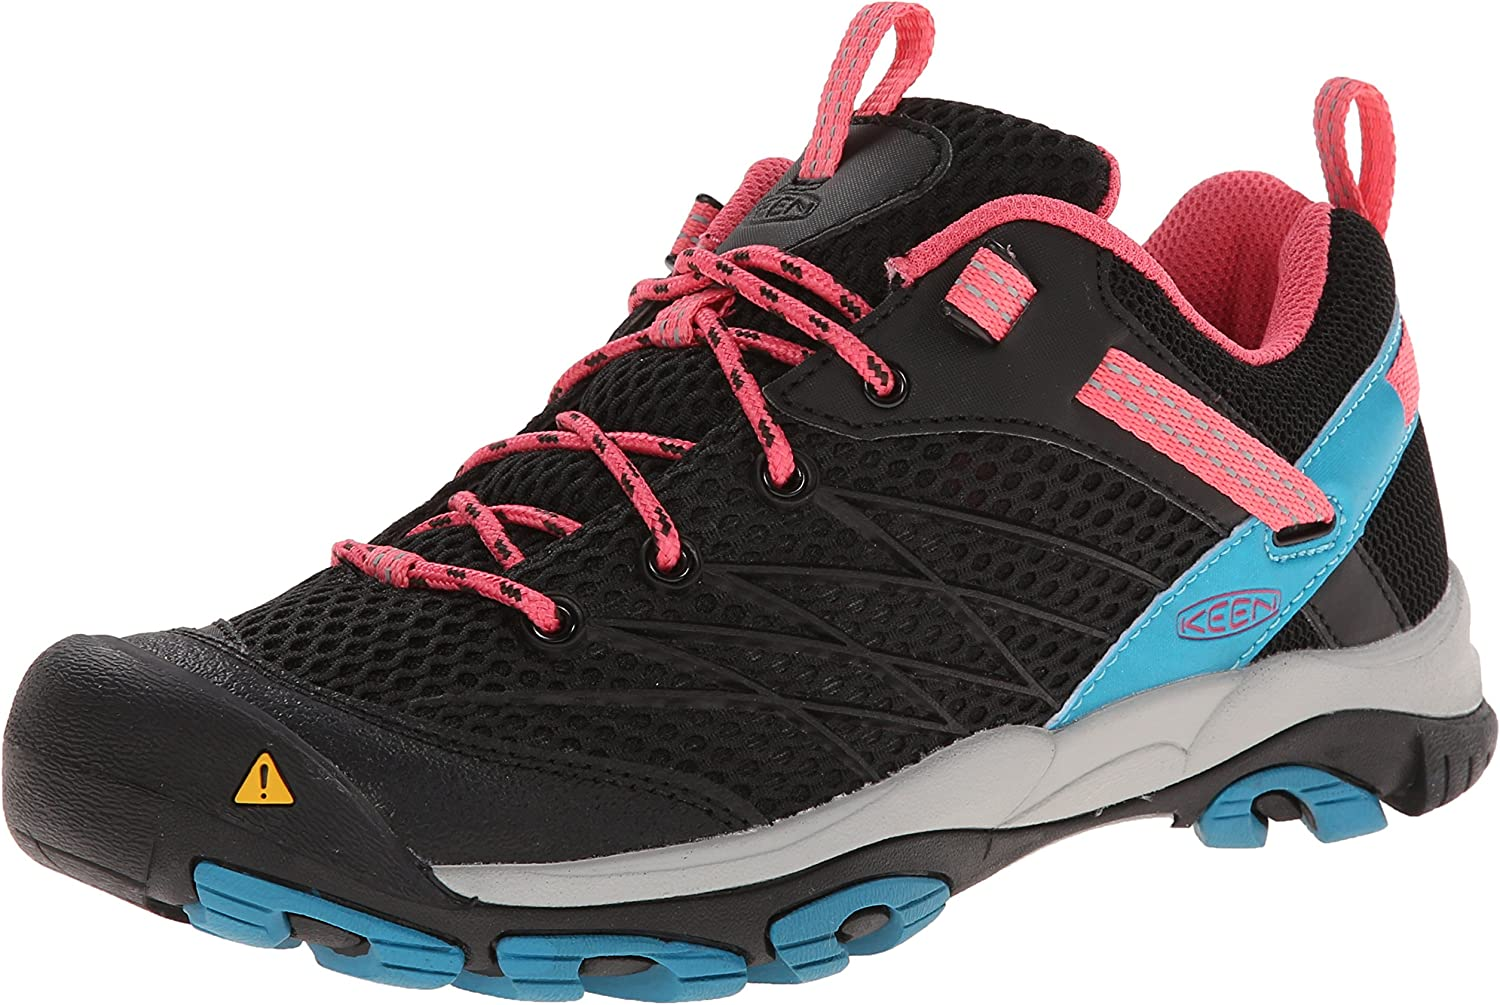 KEEN Women's Marshall Hiking shoes Pink